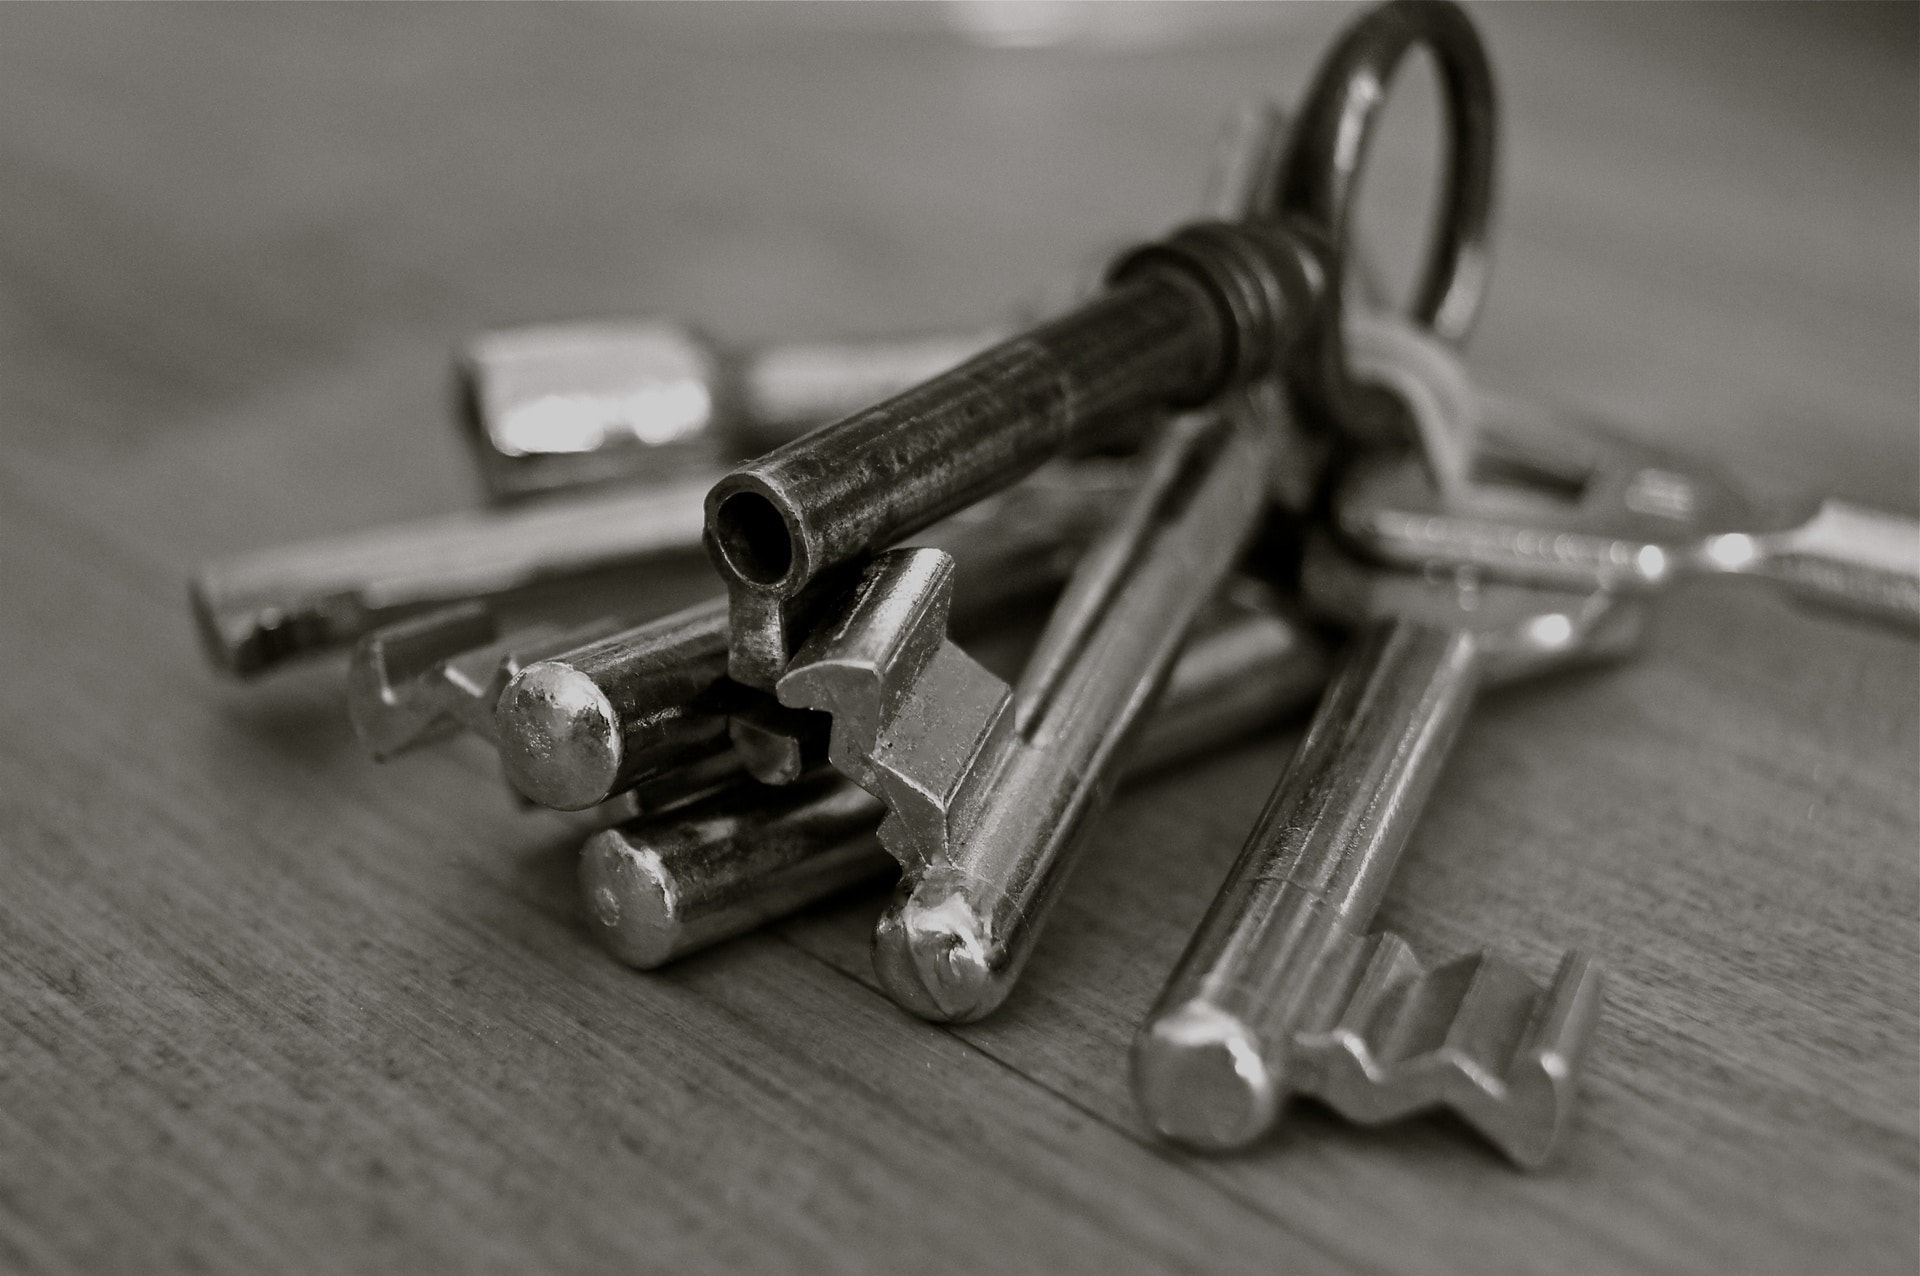 Choosing an Emergency Locksmith